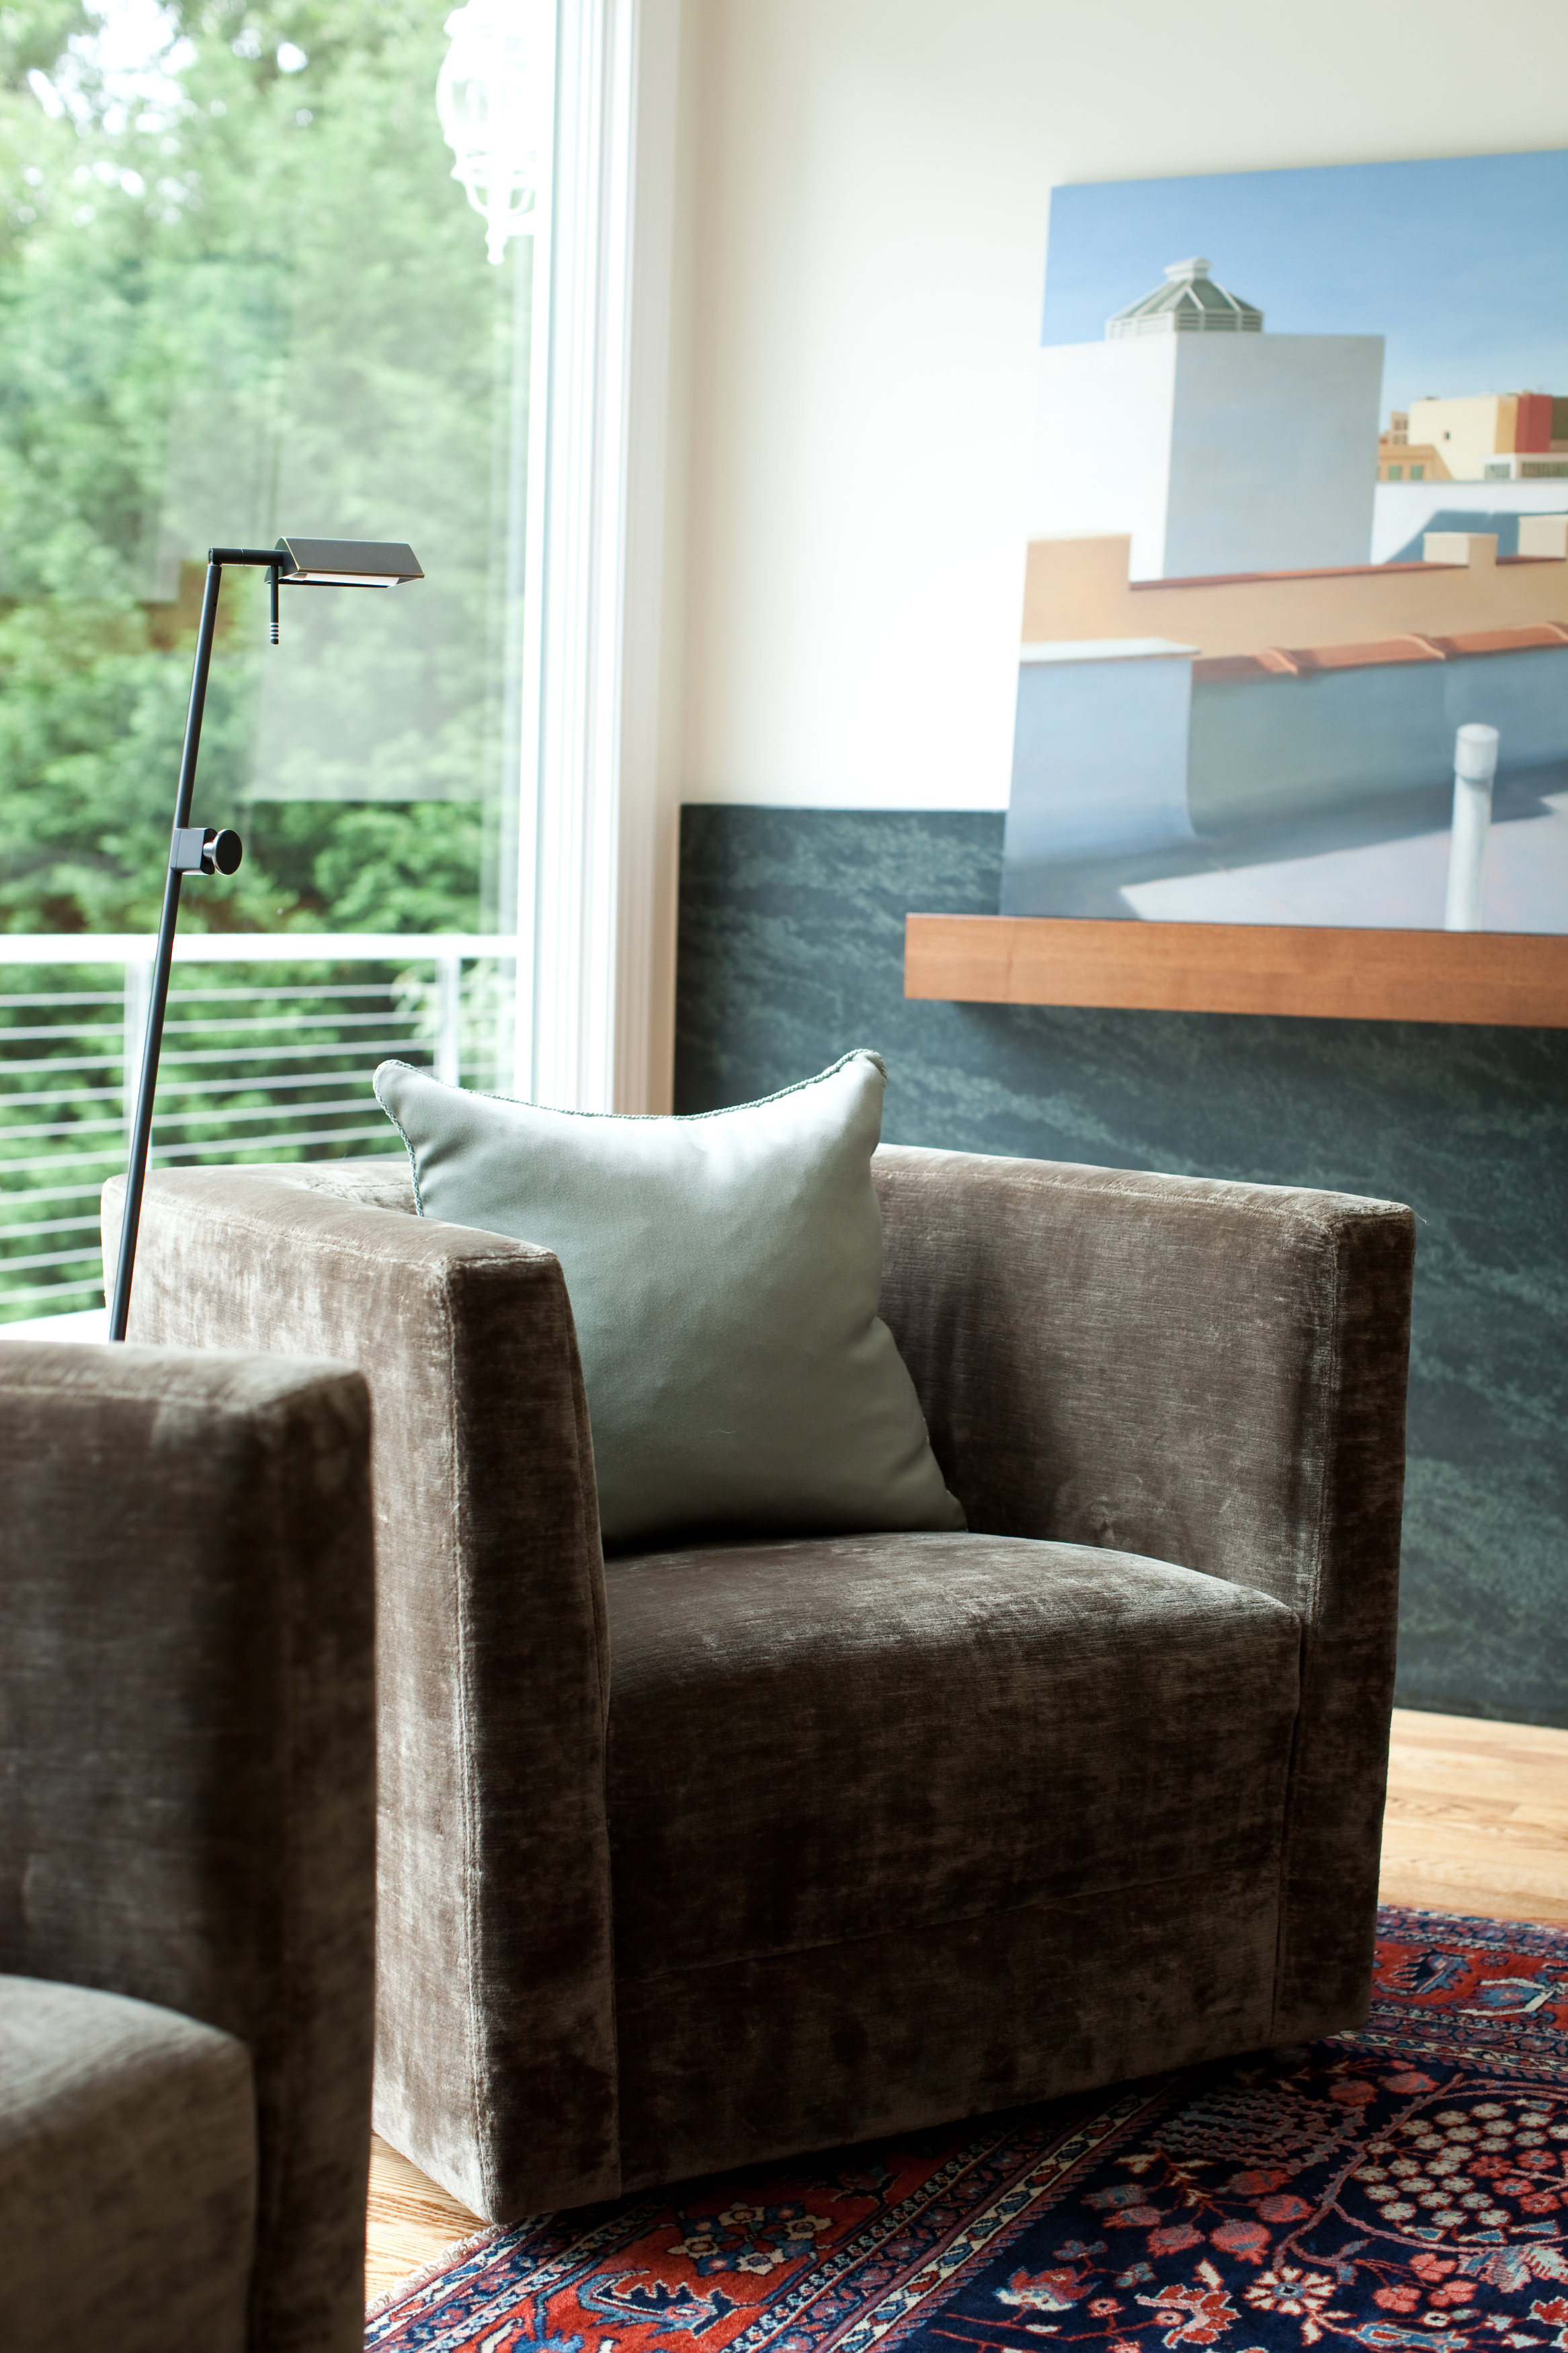 Michelle Miller Interiors-Annapolis Residence I-0113 - Swivel Chairs.jpg